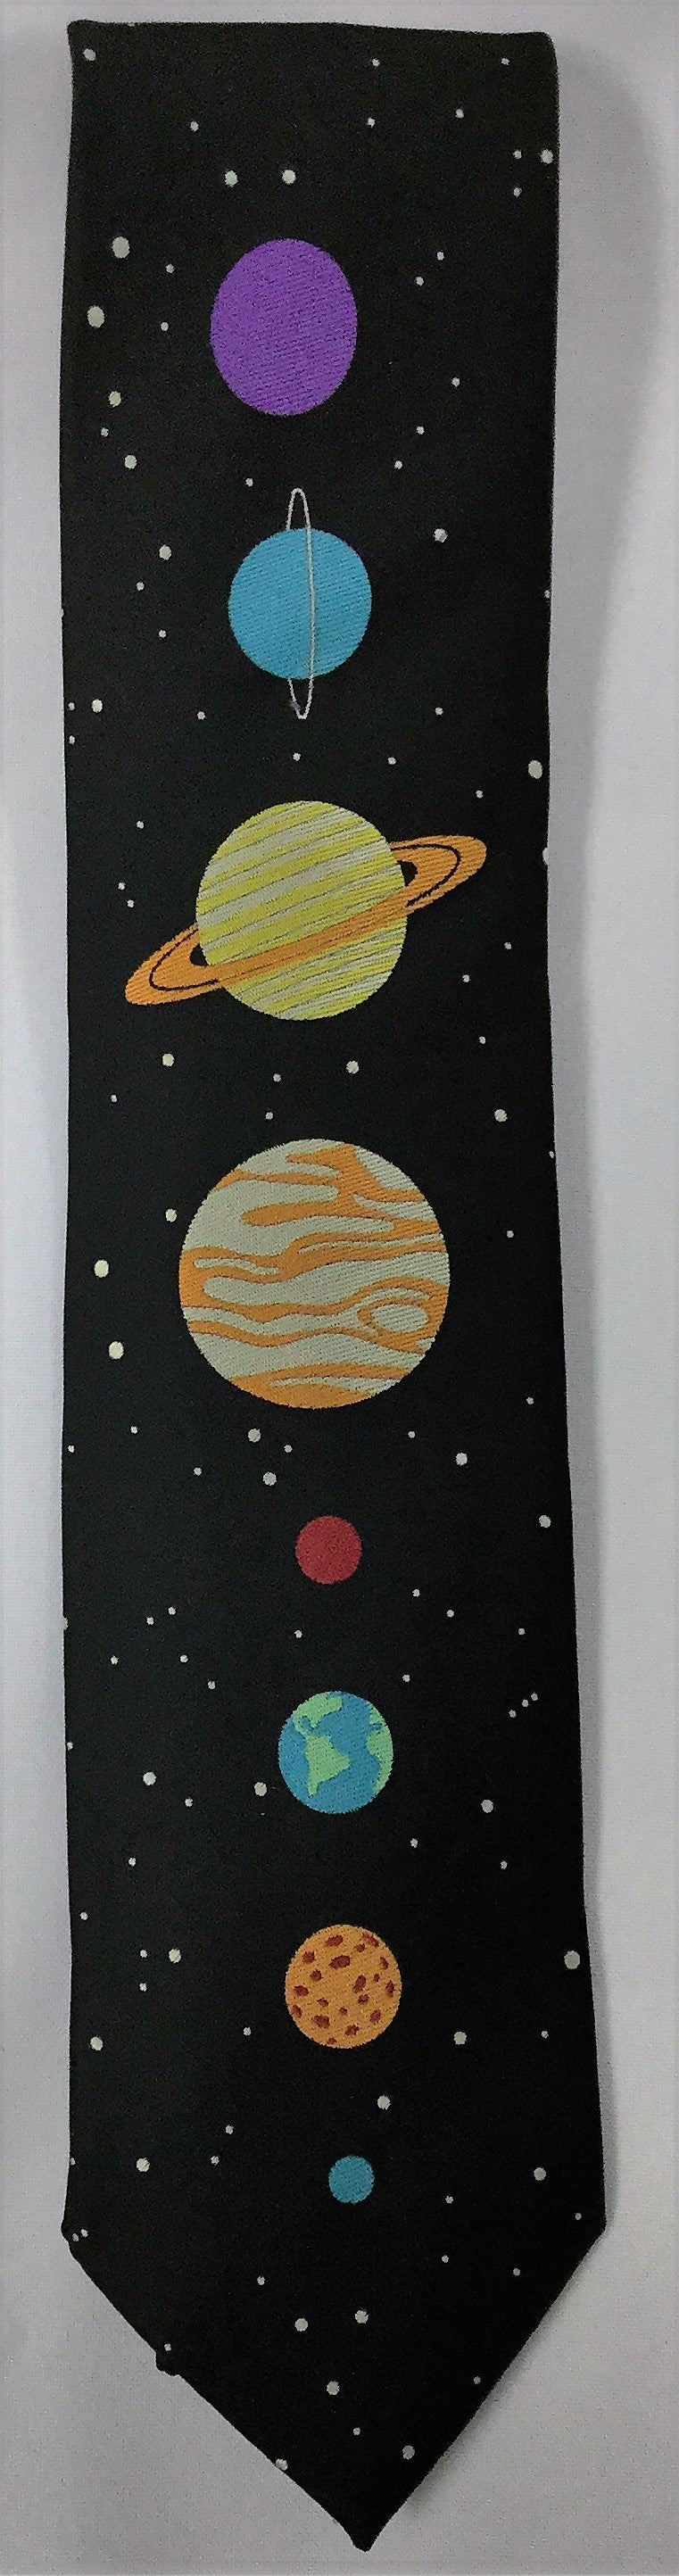 8 Planets Tie